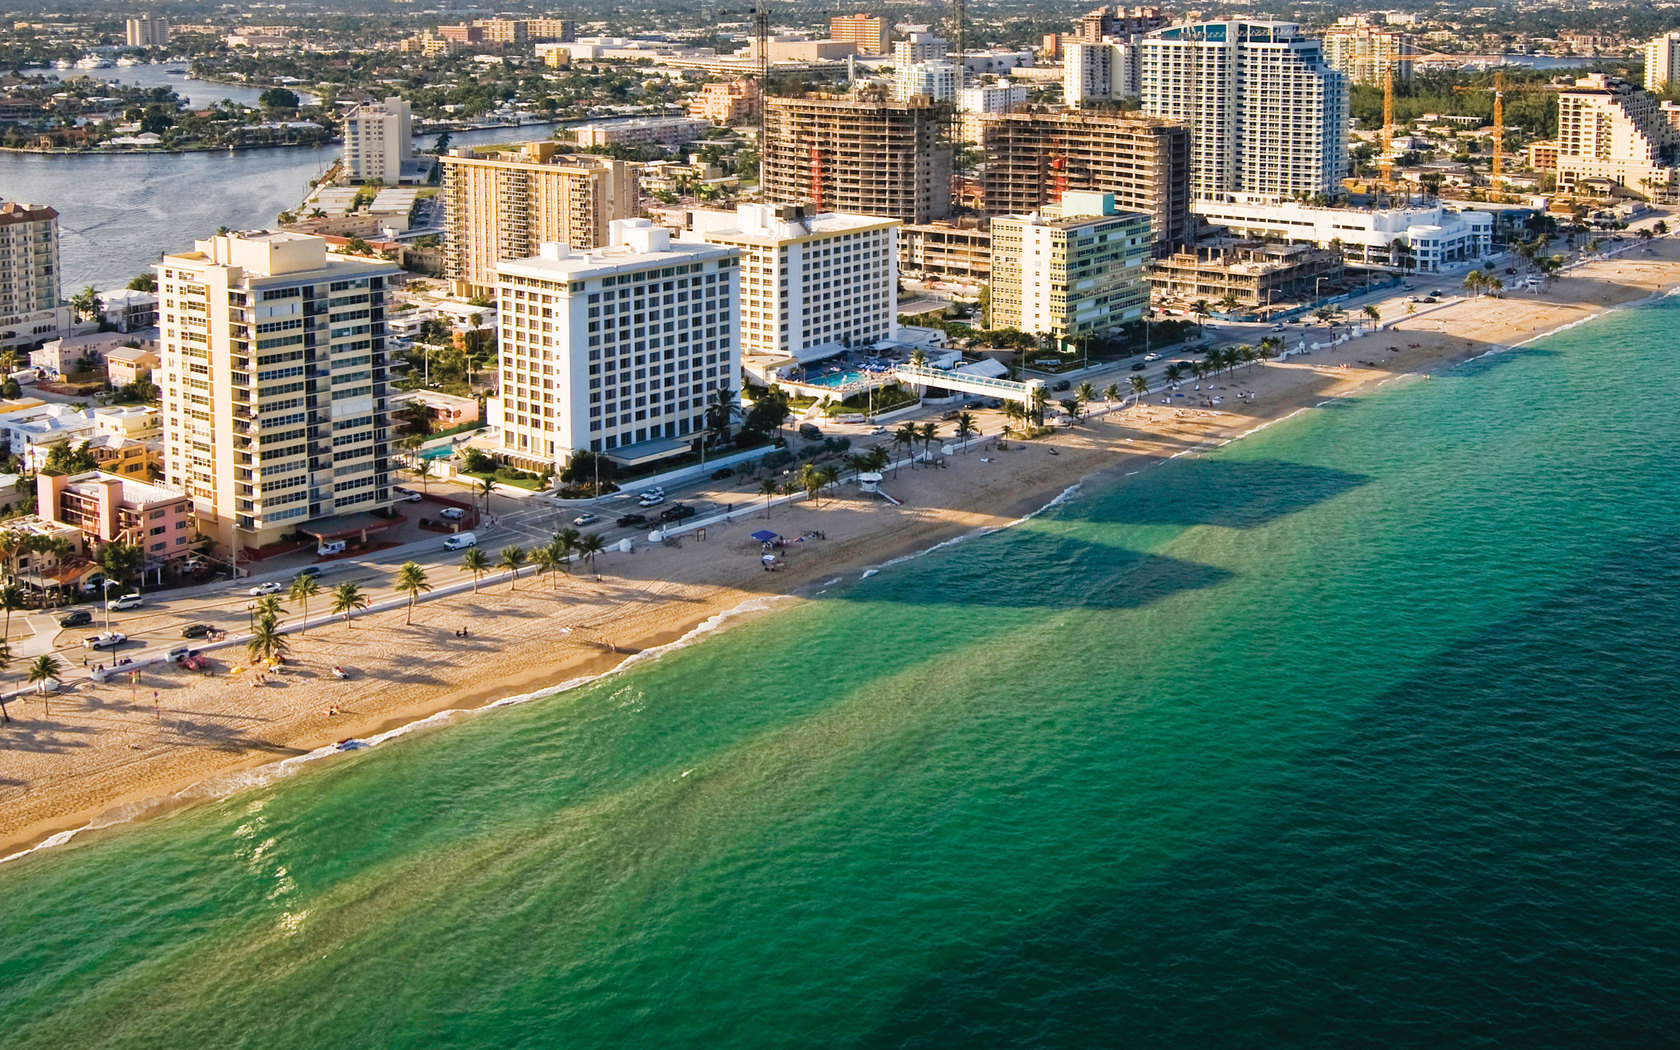 Best Hotels In Fort Lauderdale For Cruise